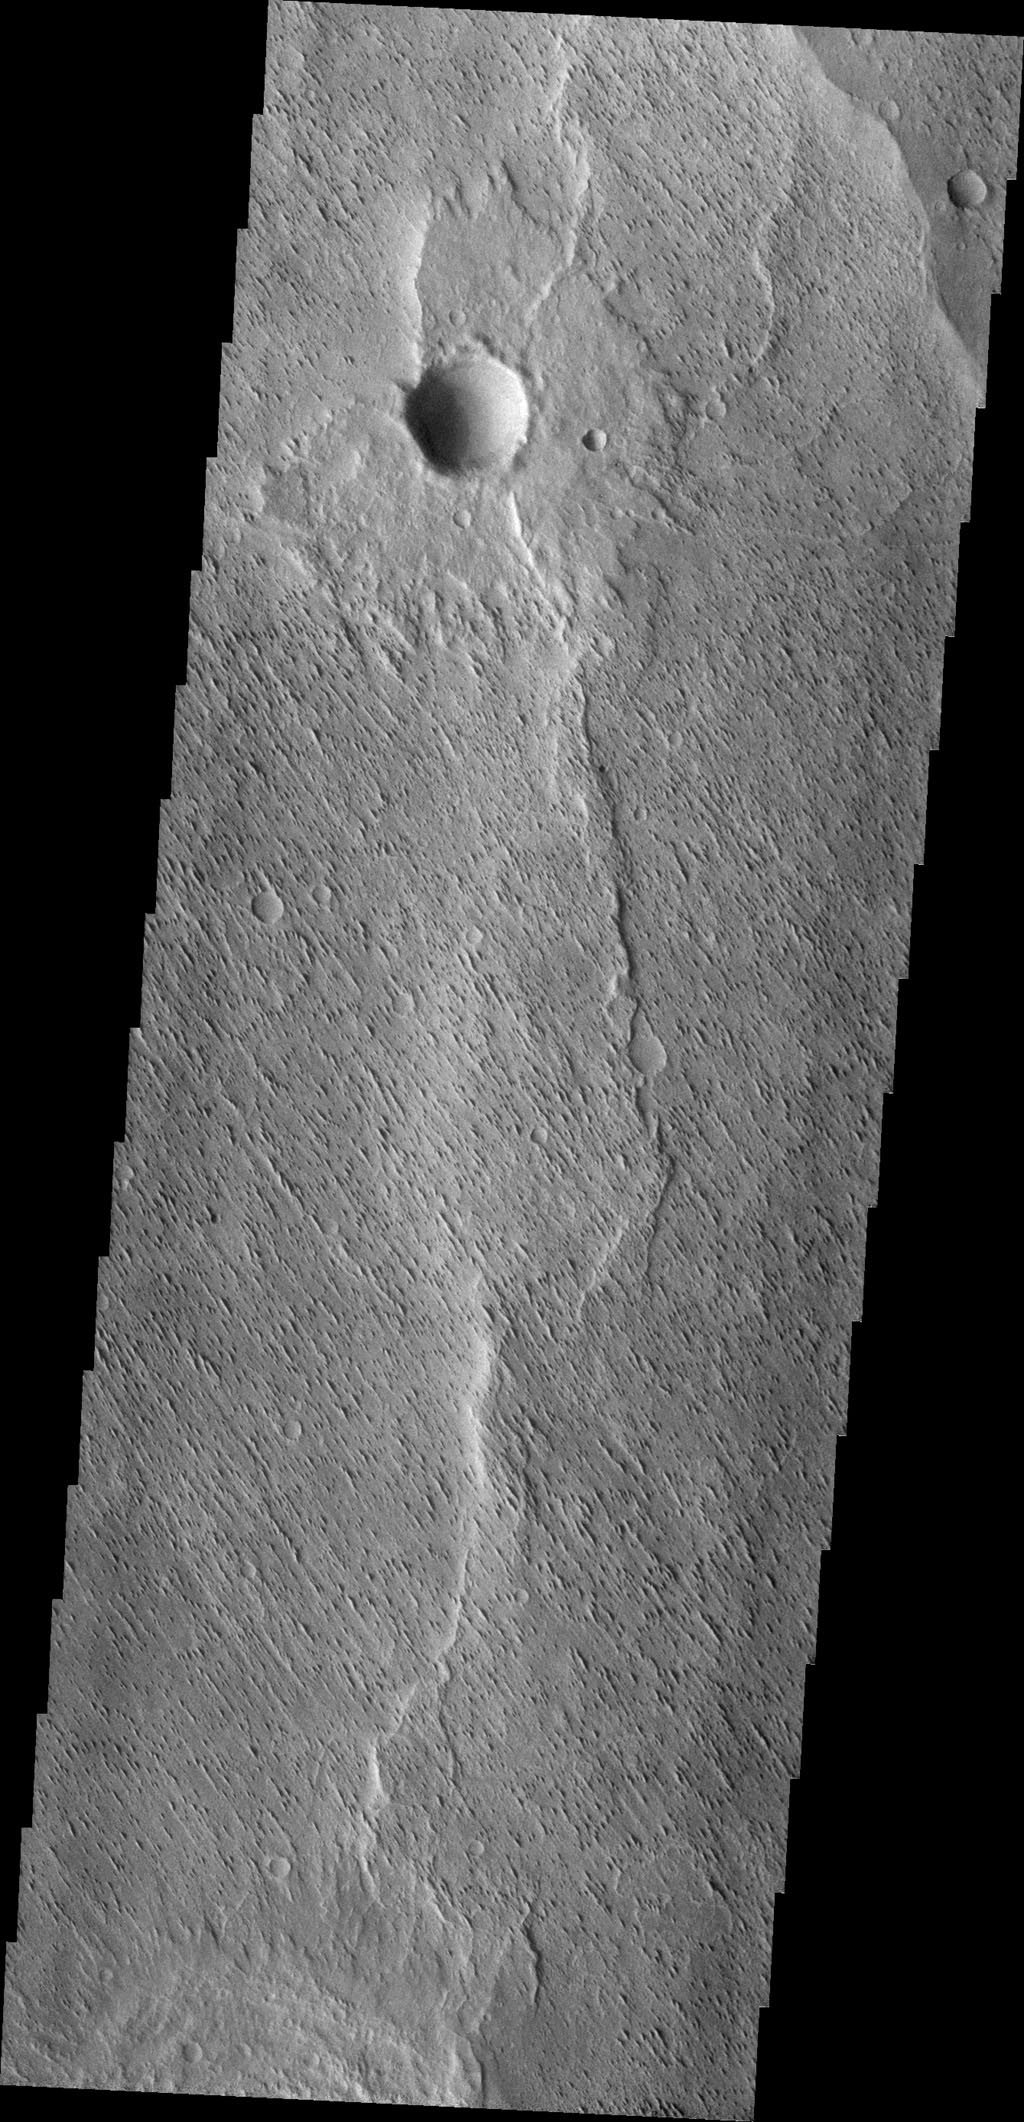 The small parallel ridges in this image captured by NASA's 2001 Mars Odyssey spacecraft were created by the erosive power of wind blown particles.